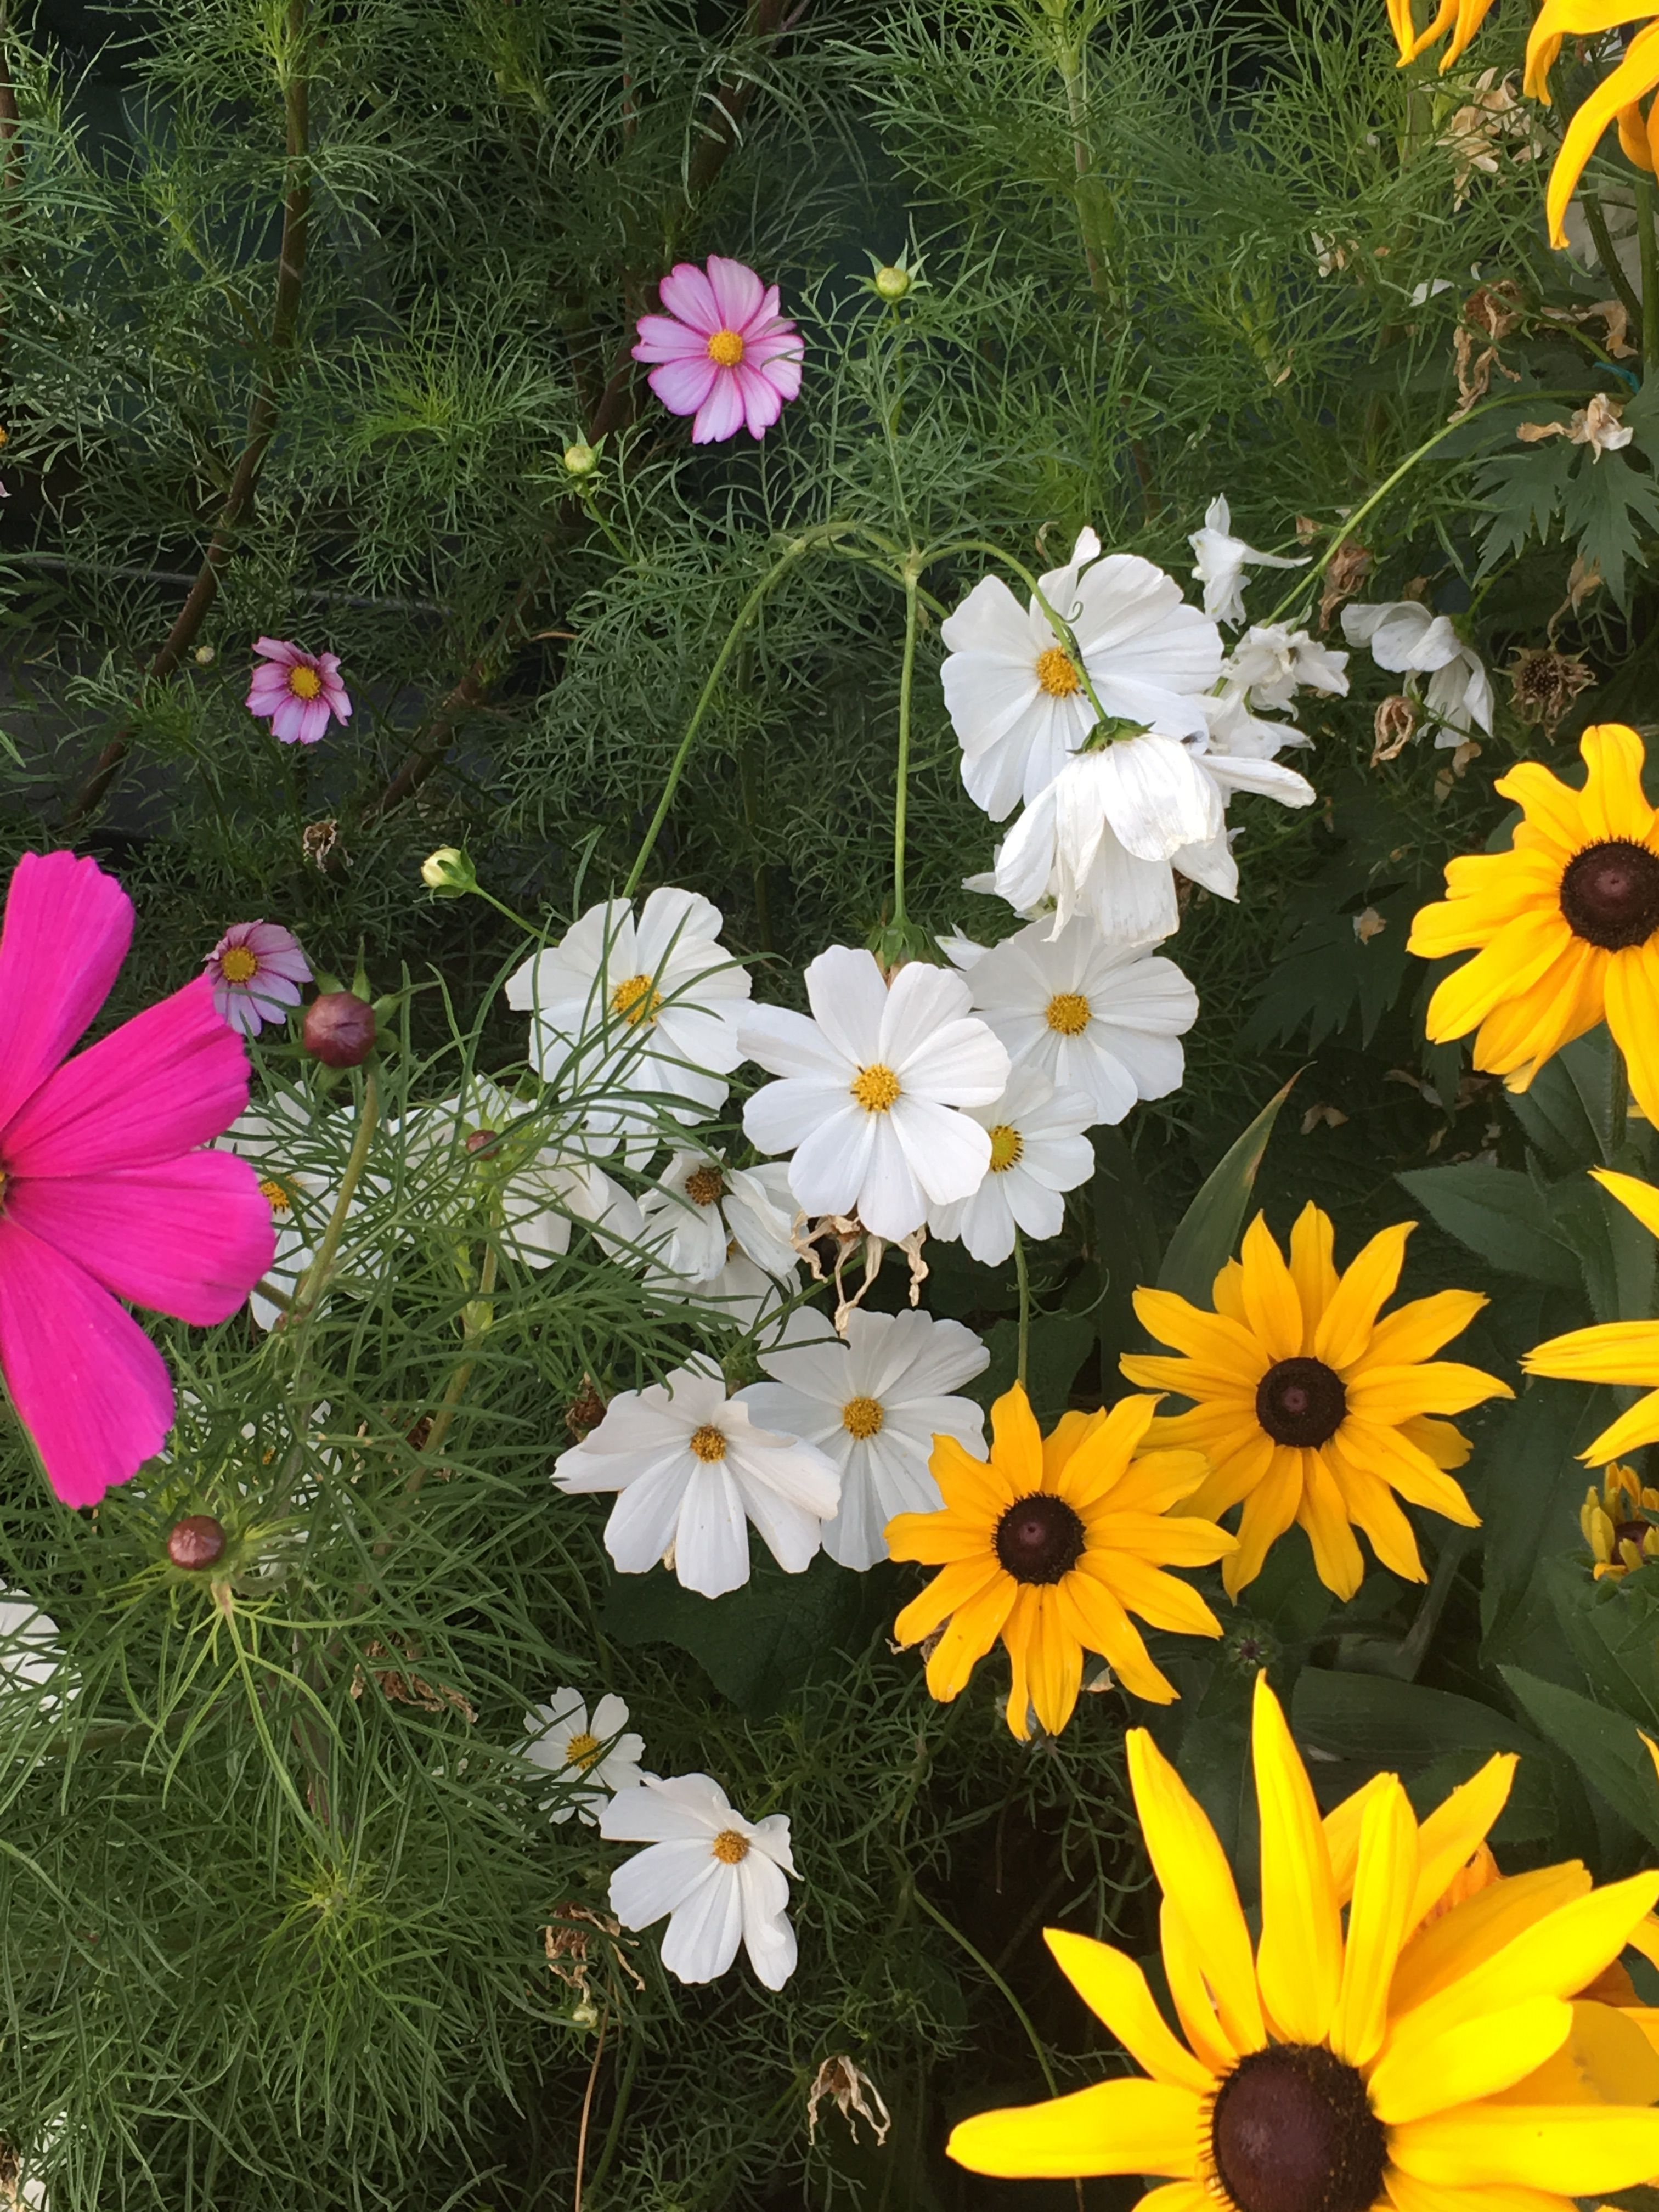 Pin By Aj Andy On Cosmos Flowers Pinterest Flowers Perennials